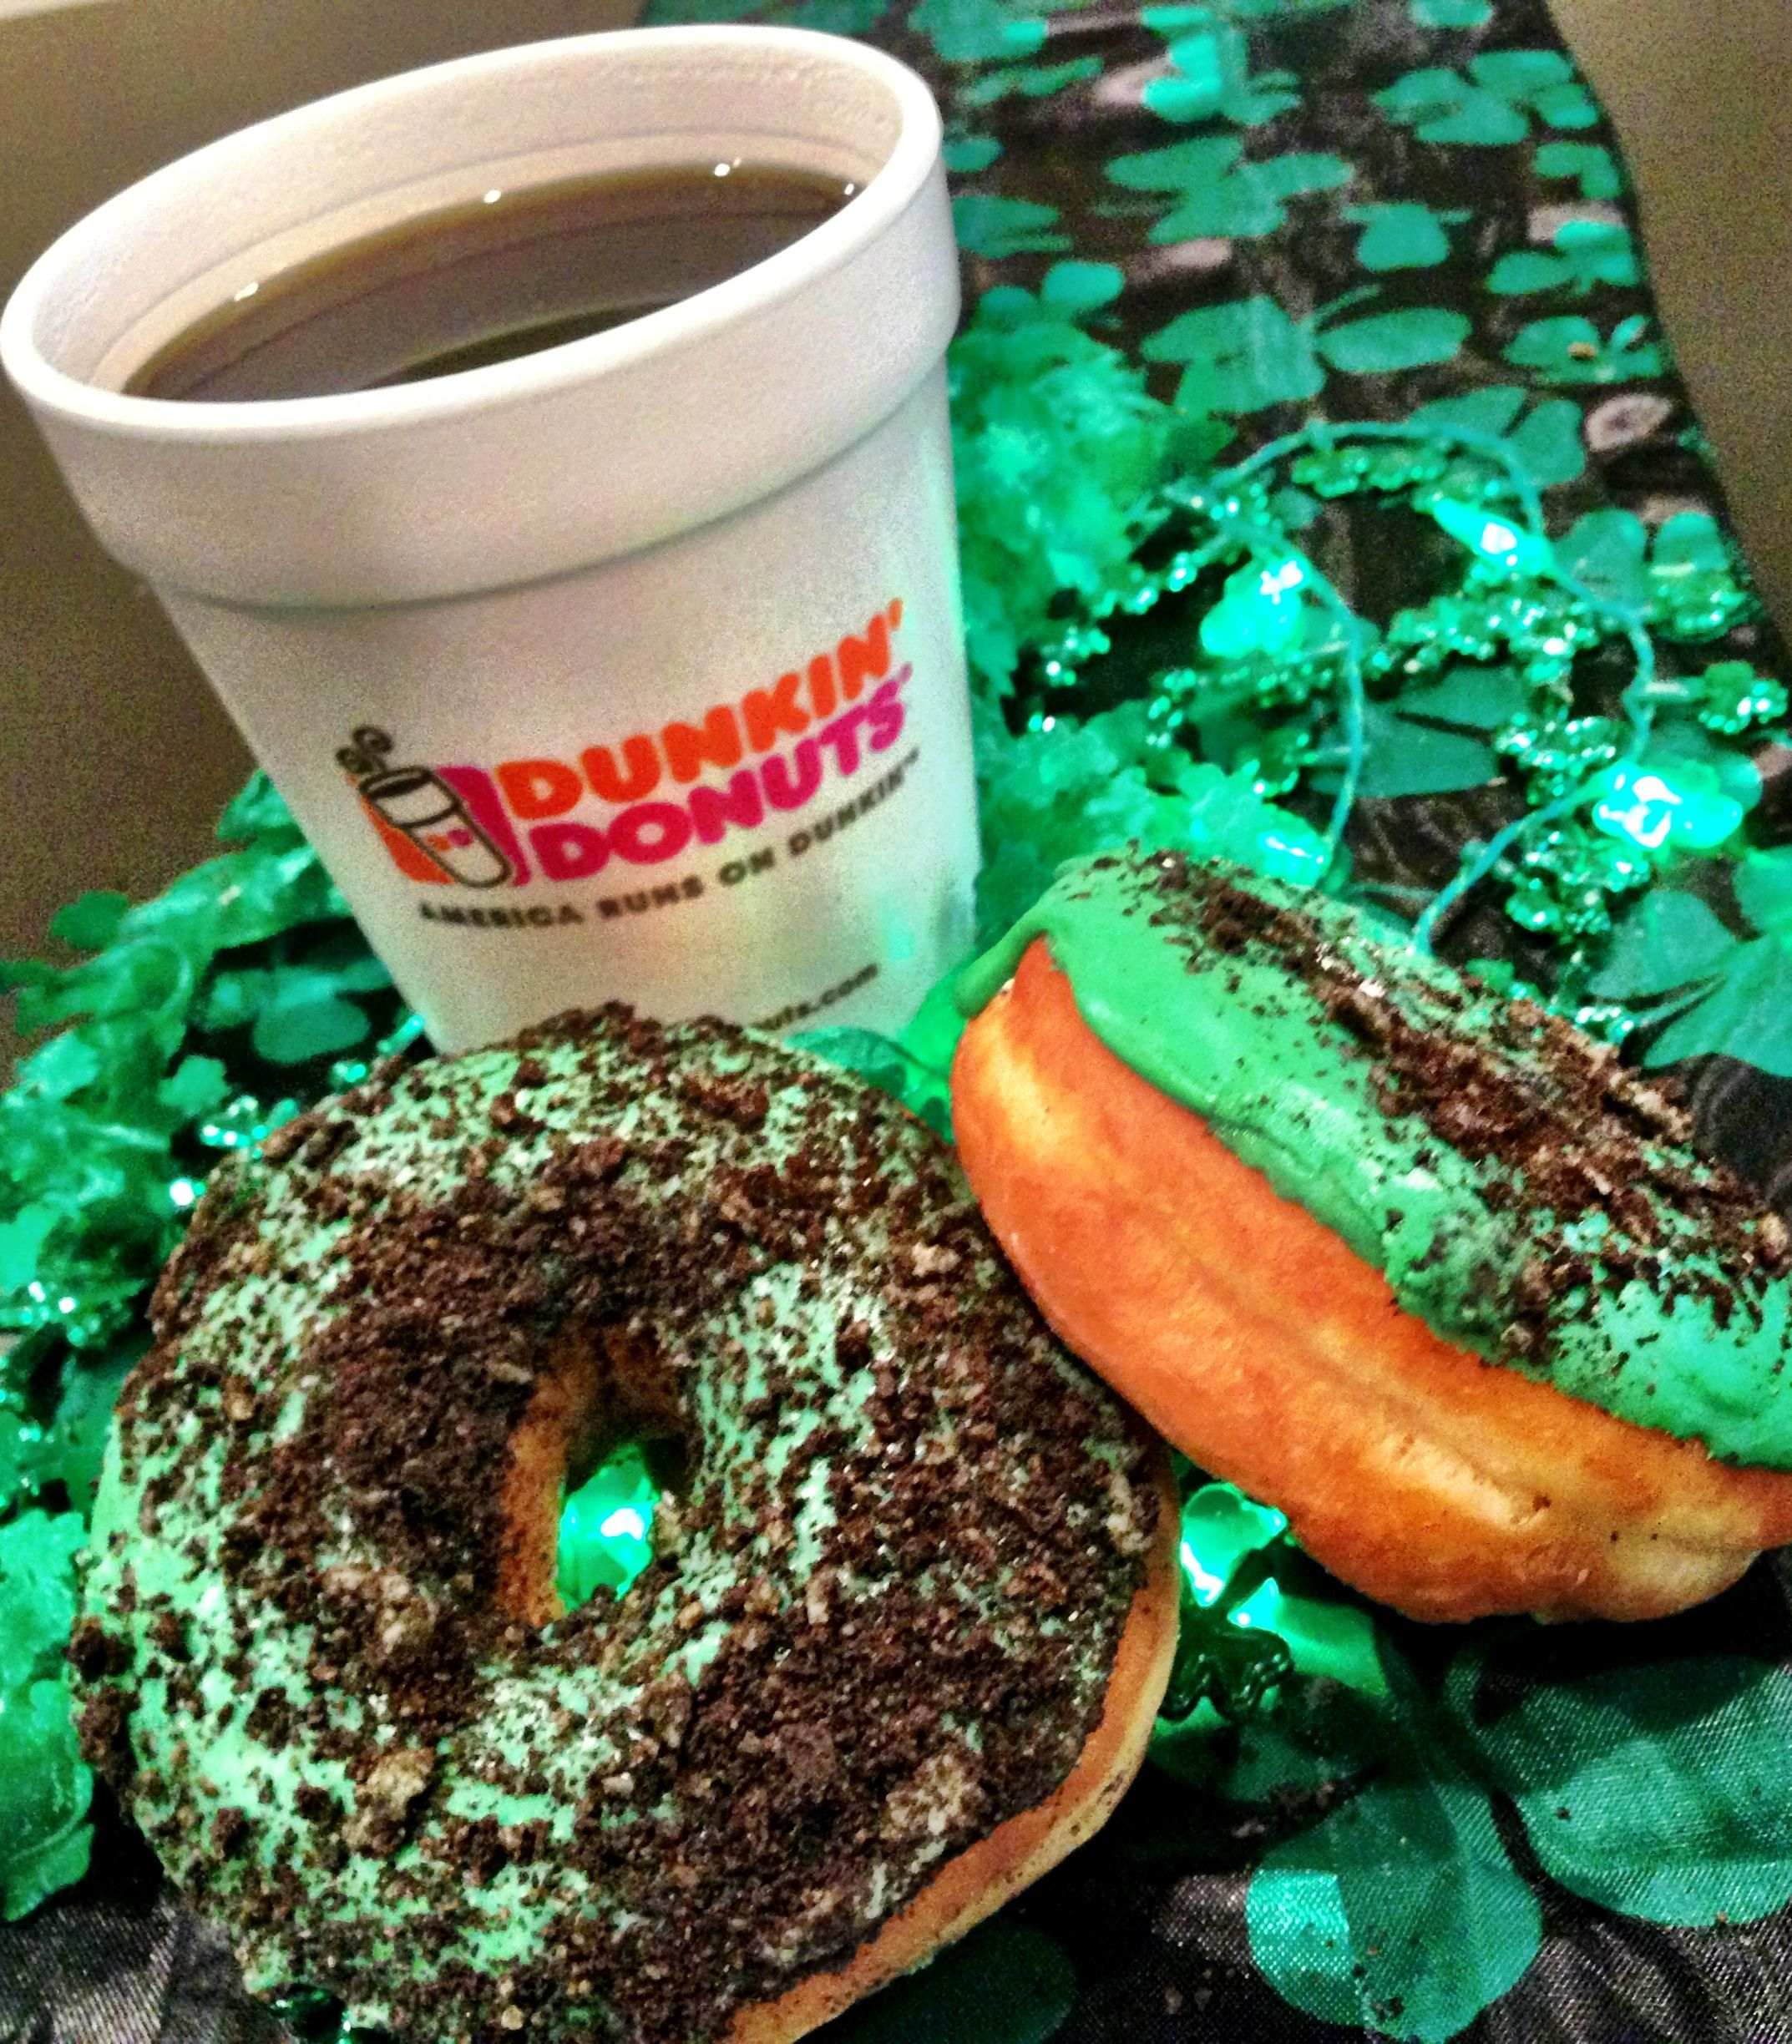 Who wants an Irish Creme Coffee toDDay? Chicago Dunkin